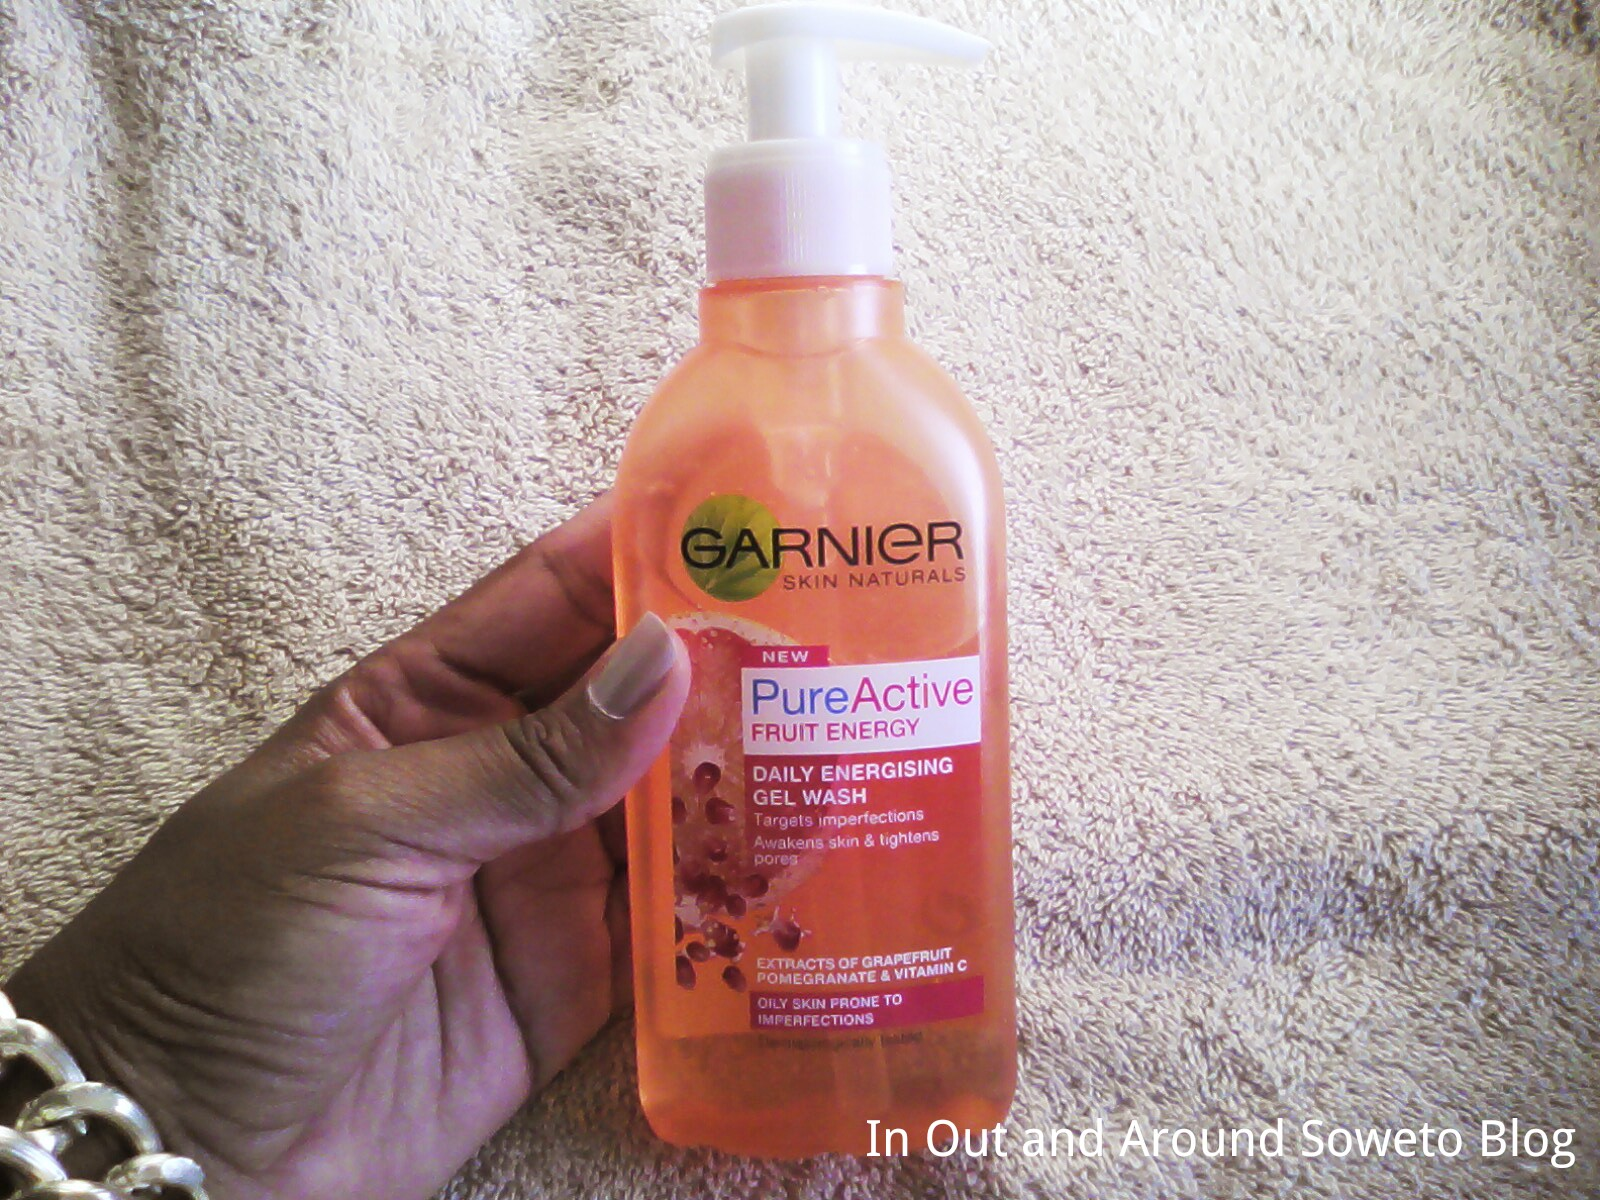 Review Garnier Pure Active Fruit Energy Daily Energising Gel Wash